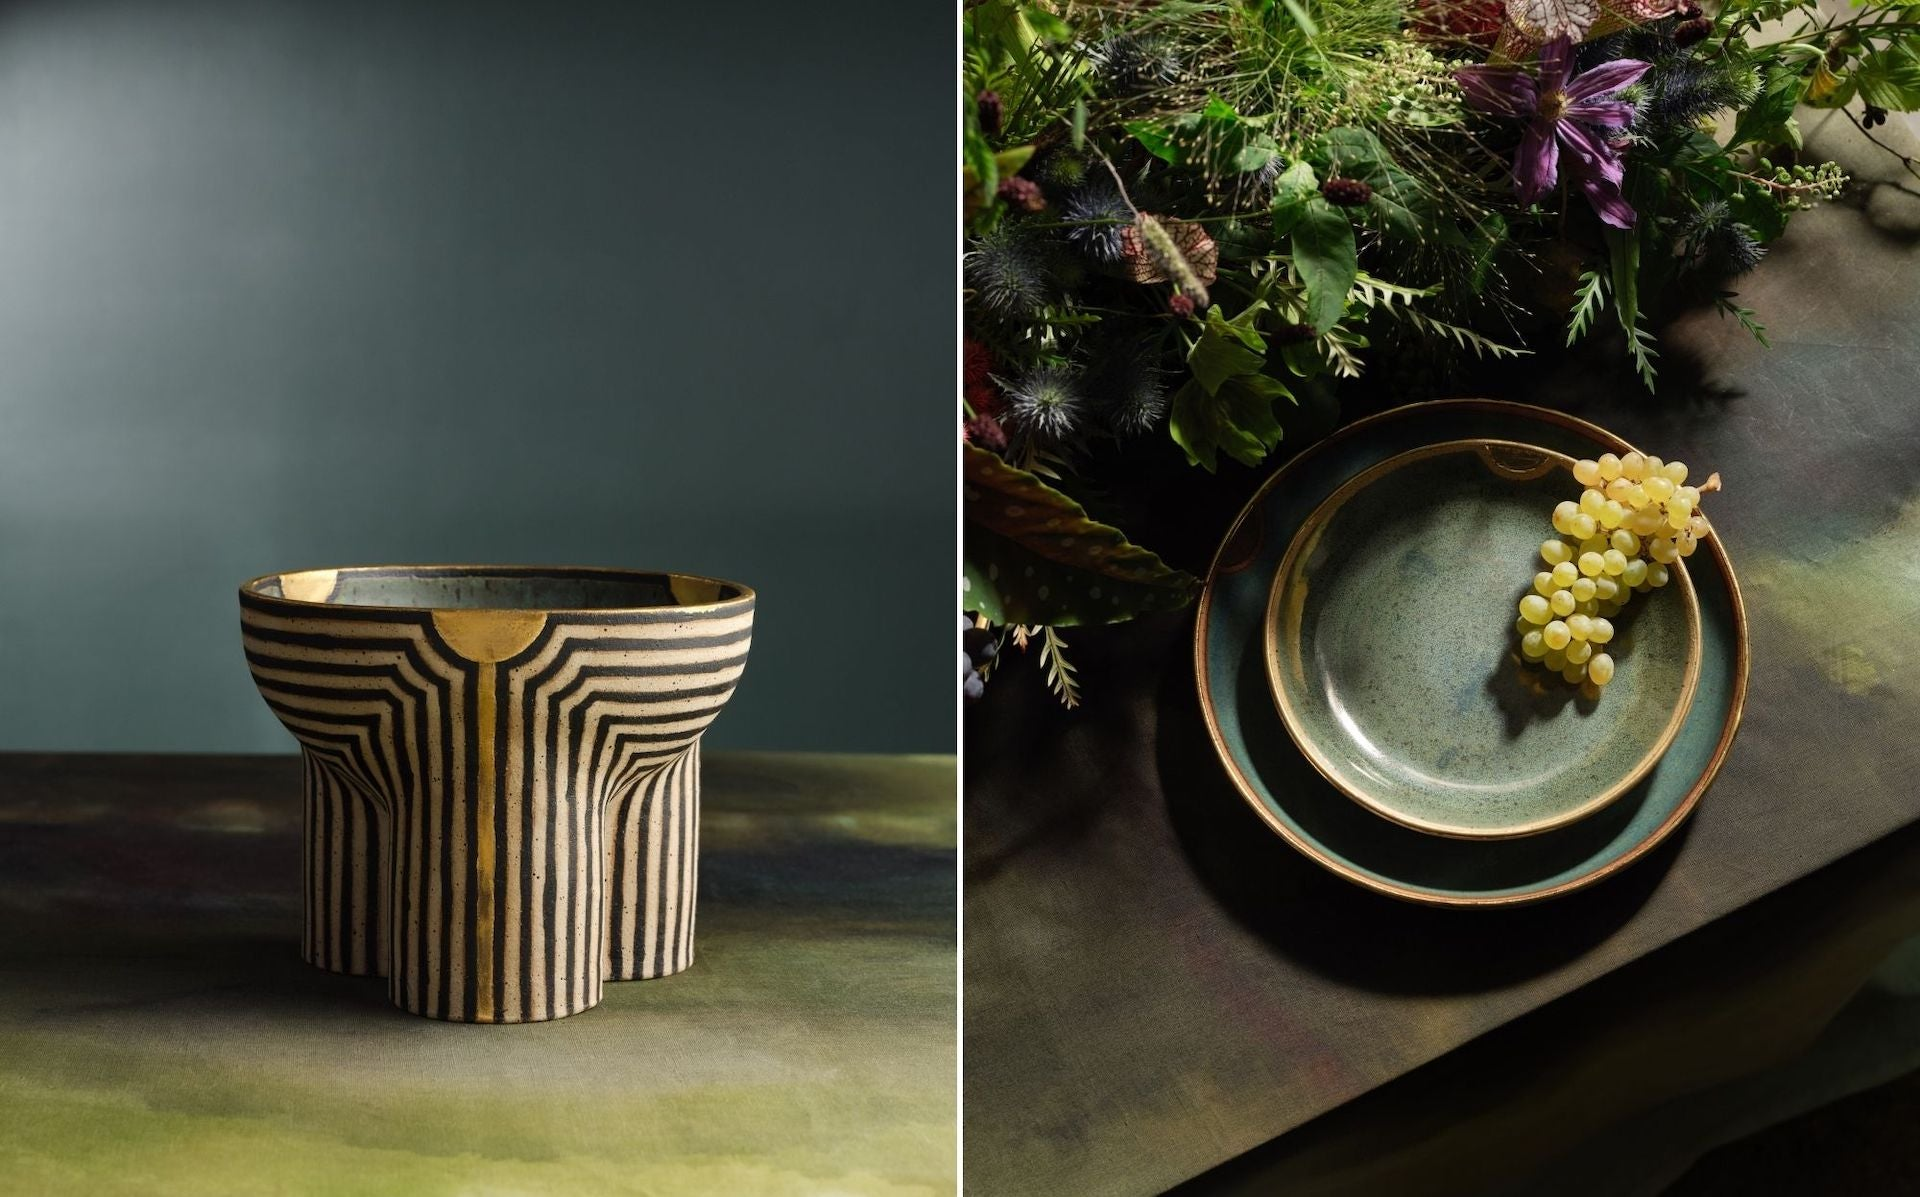 Ceramic Dinnerware and Piccolo Bowl by Jeremy Anderson for The Feast. Photos © DM/BX